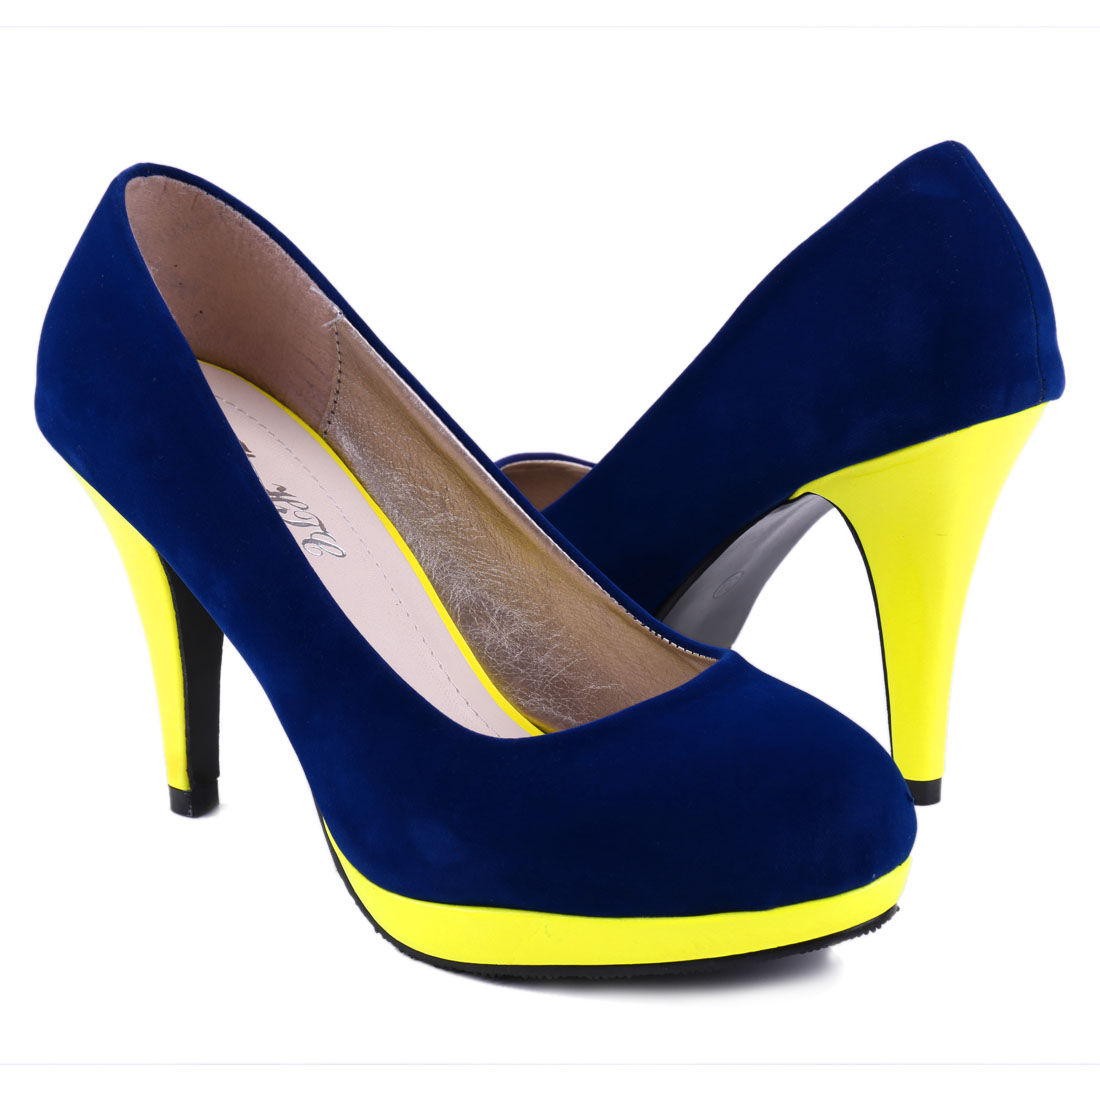 Woman Stylish Royalblue Yellow Round Toe Faux Sudue Vamp Platform Pumps us 7